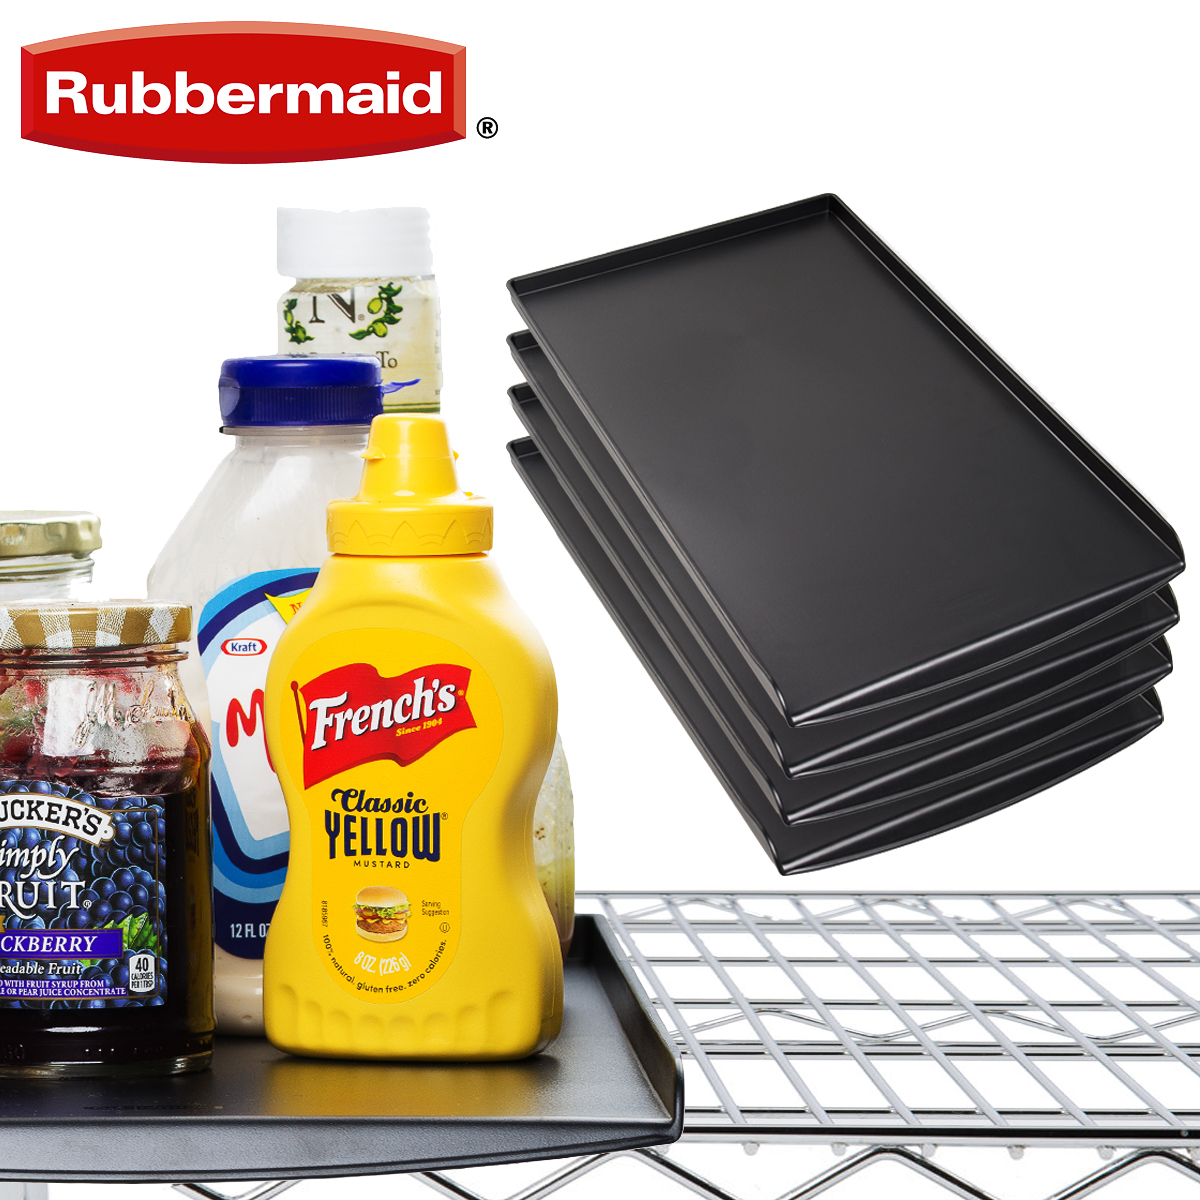 4 Rubbermaid Black Kitchen Pantry Or Cabinet Organization Trays For Wire Shelves Organizer Drawer